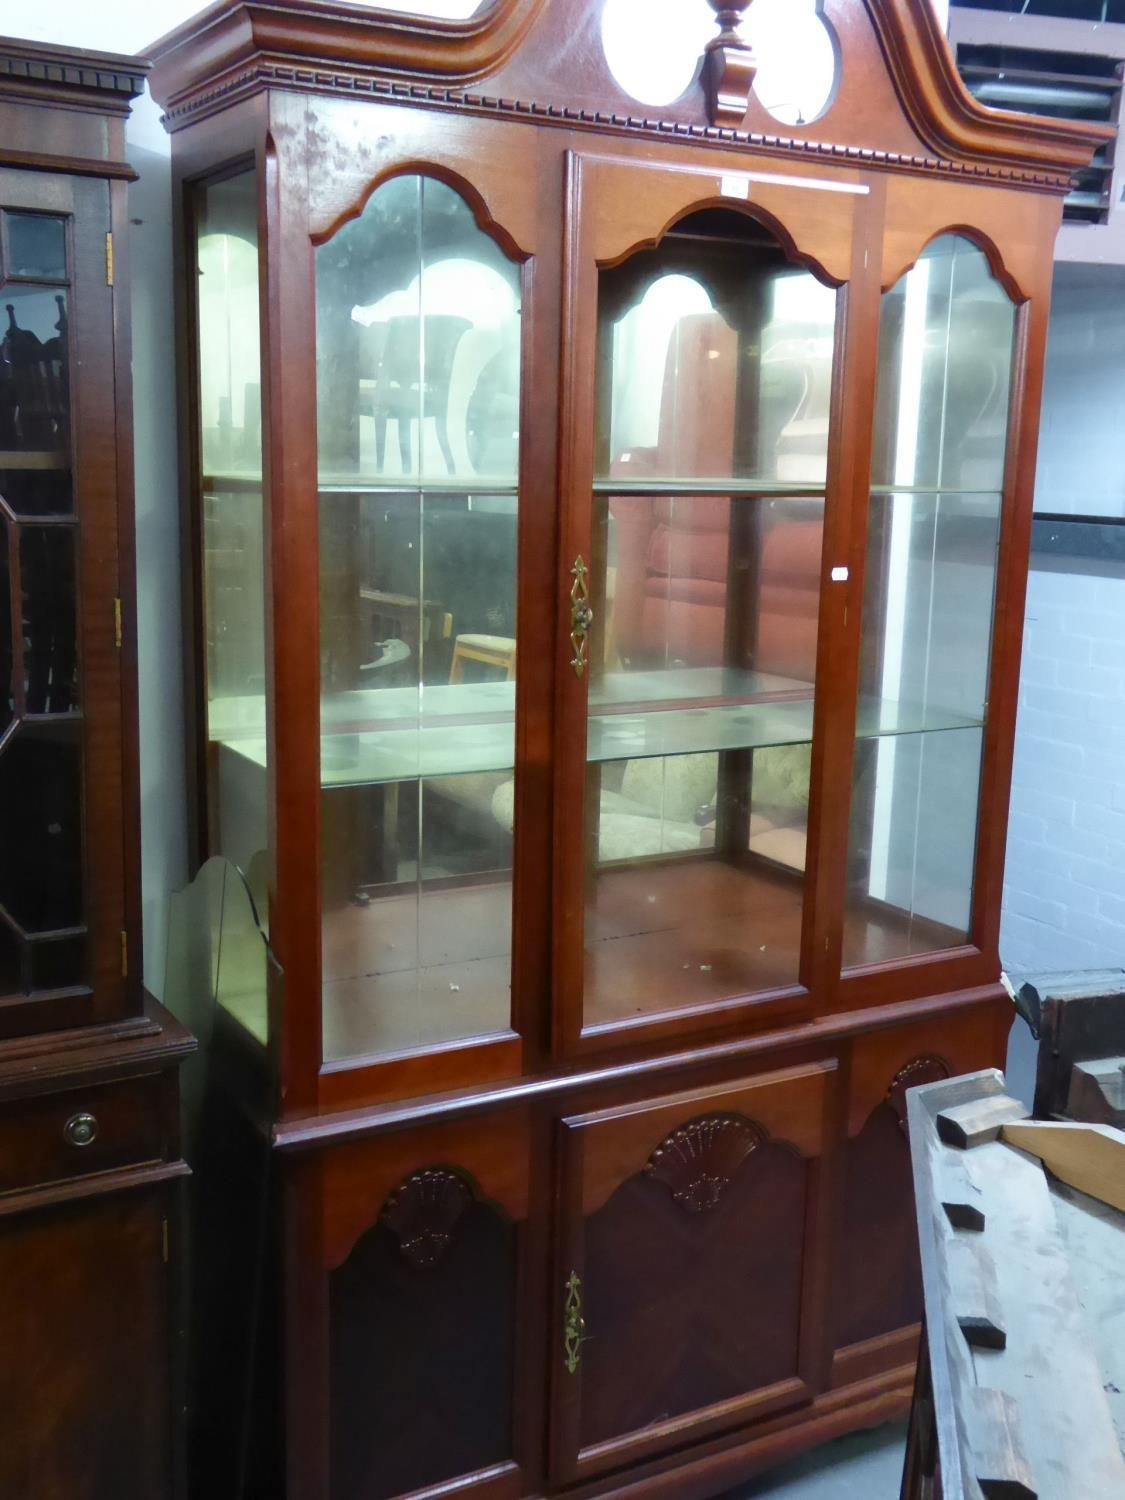 GEORGIAN STYLE MAHOGANY DISPLAY CABINET WITH BROKEN ARCH PEDIMENT, MIRRORED INTERIORS, CUPBOARD BASE - Image 2 of 2